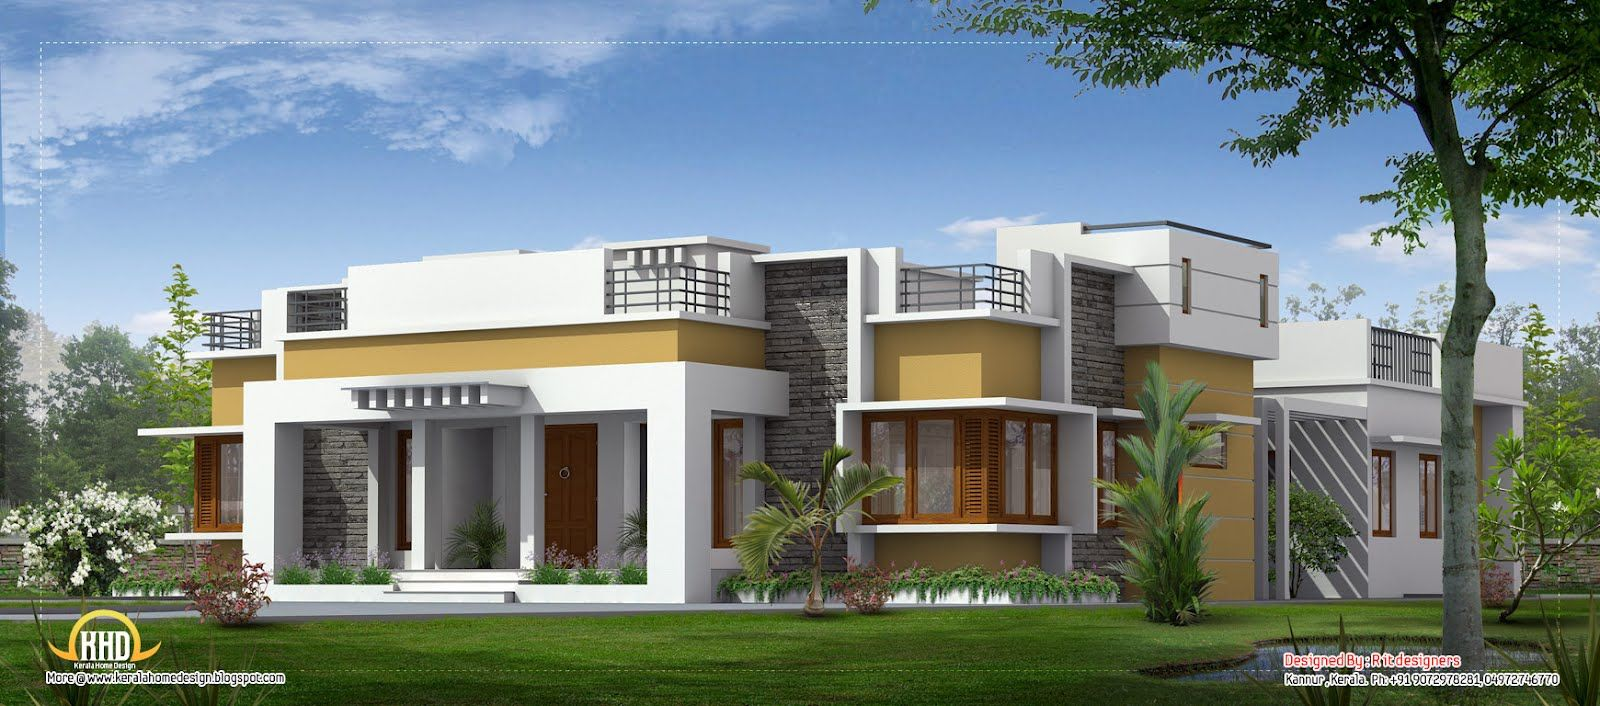 Single Floor House Front Elevation Designs In Kerala : Single level designer home floor house plans